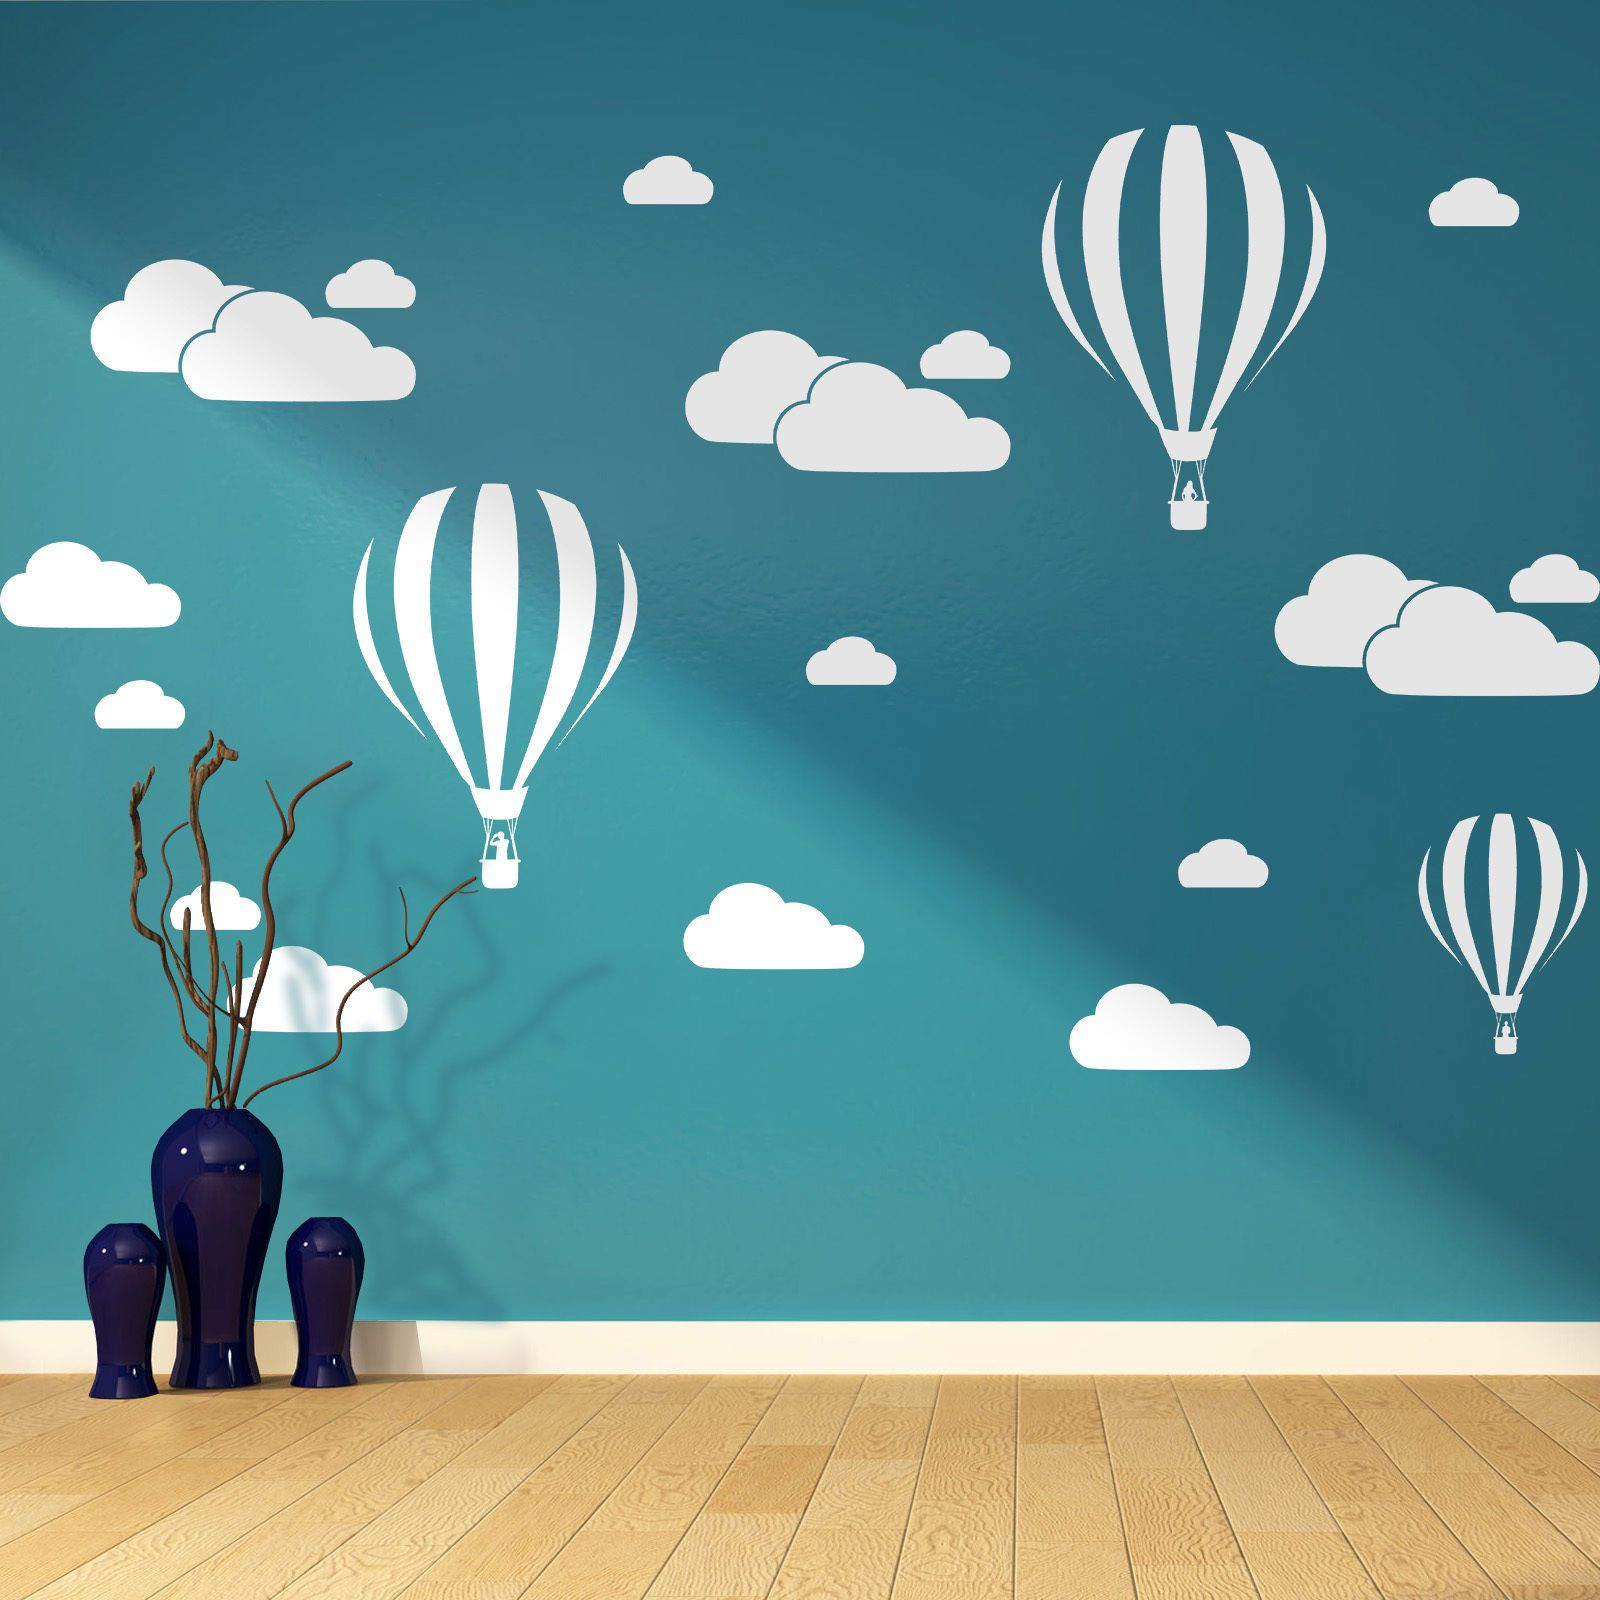 HWHD Clouds &Hot Air Balloons Nursery Kids Child's Room